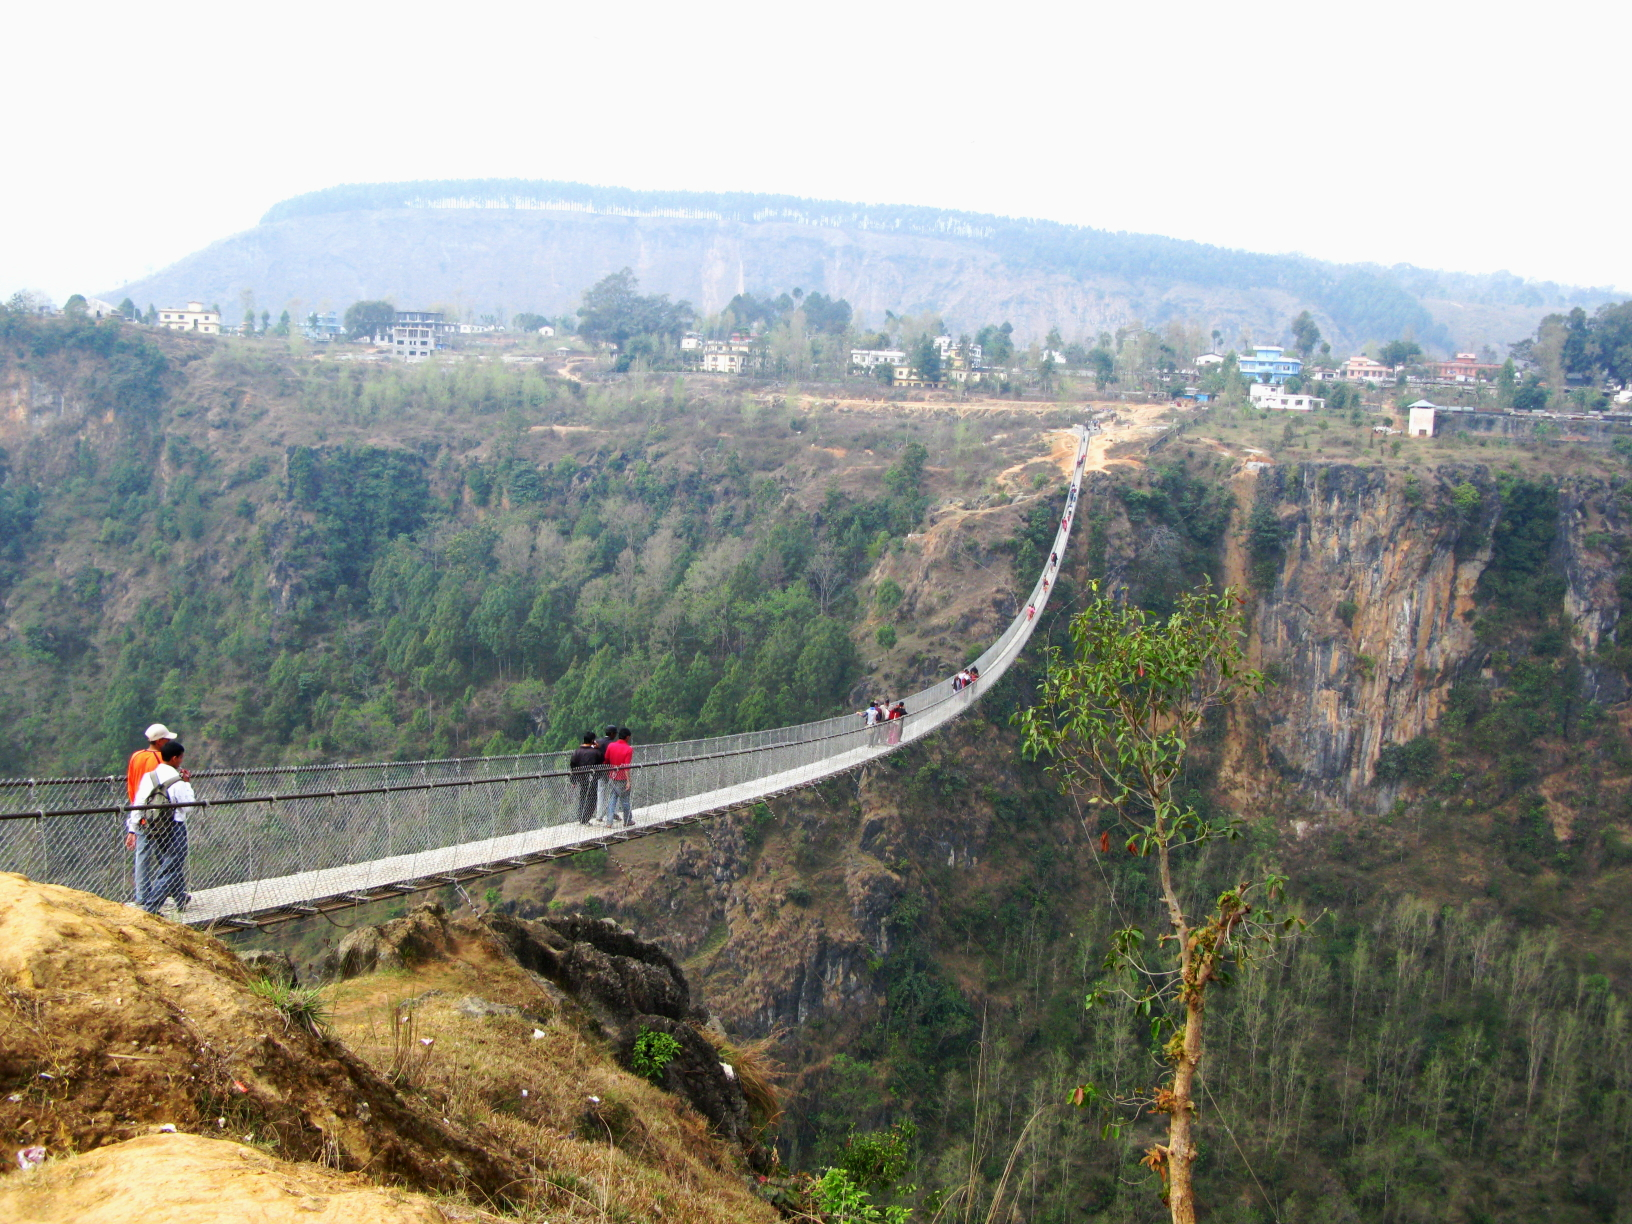 Kusma Nepal http://www.everestuncensored.org/10022/2010/03/11/tallest-suspension-bridge-in-nepal/